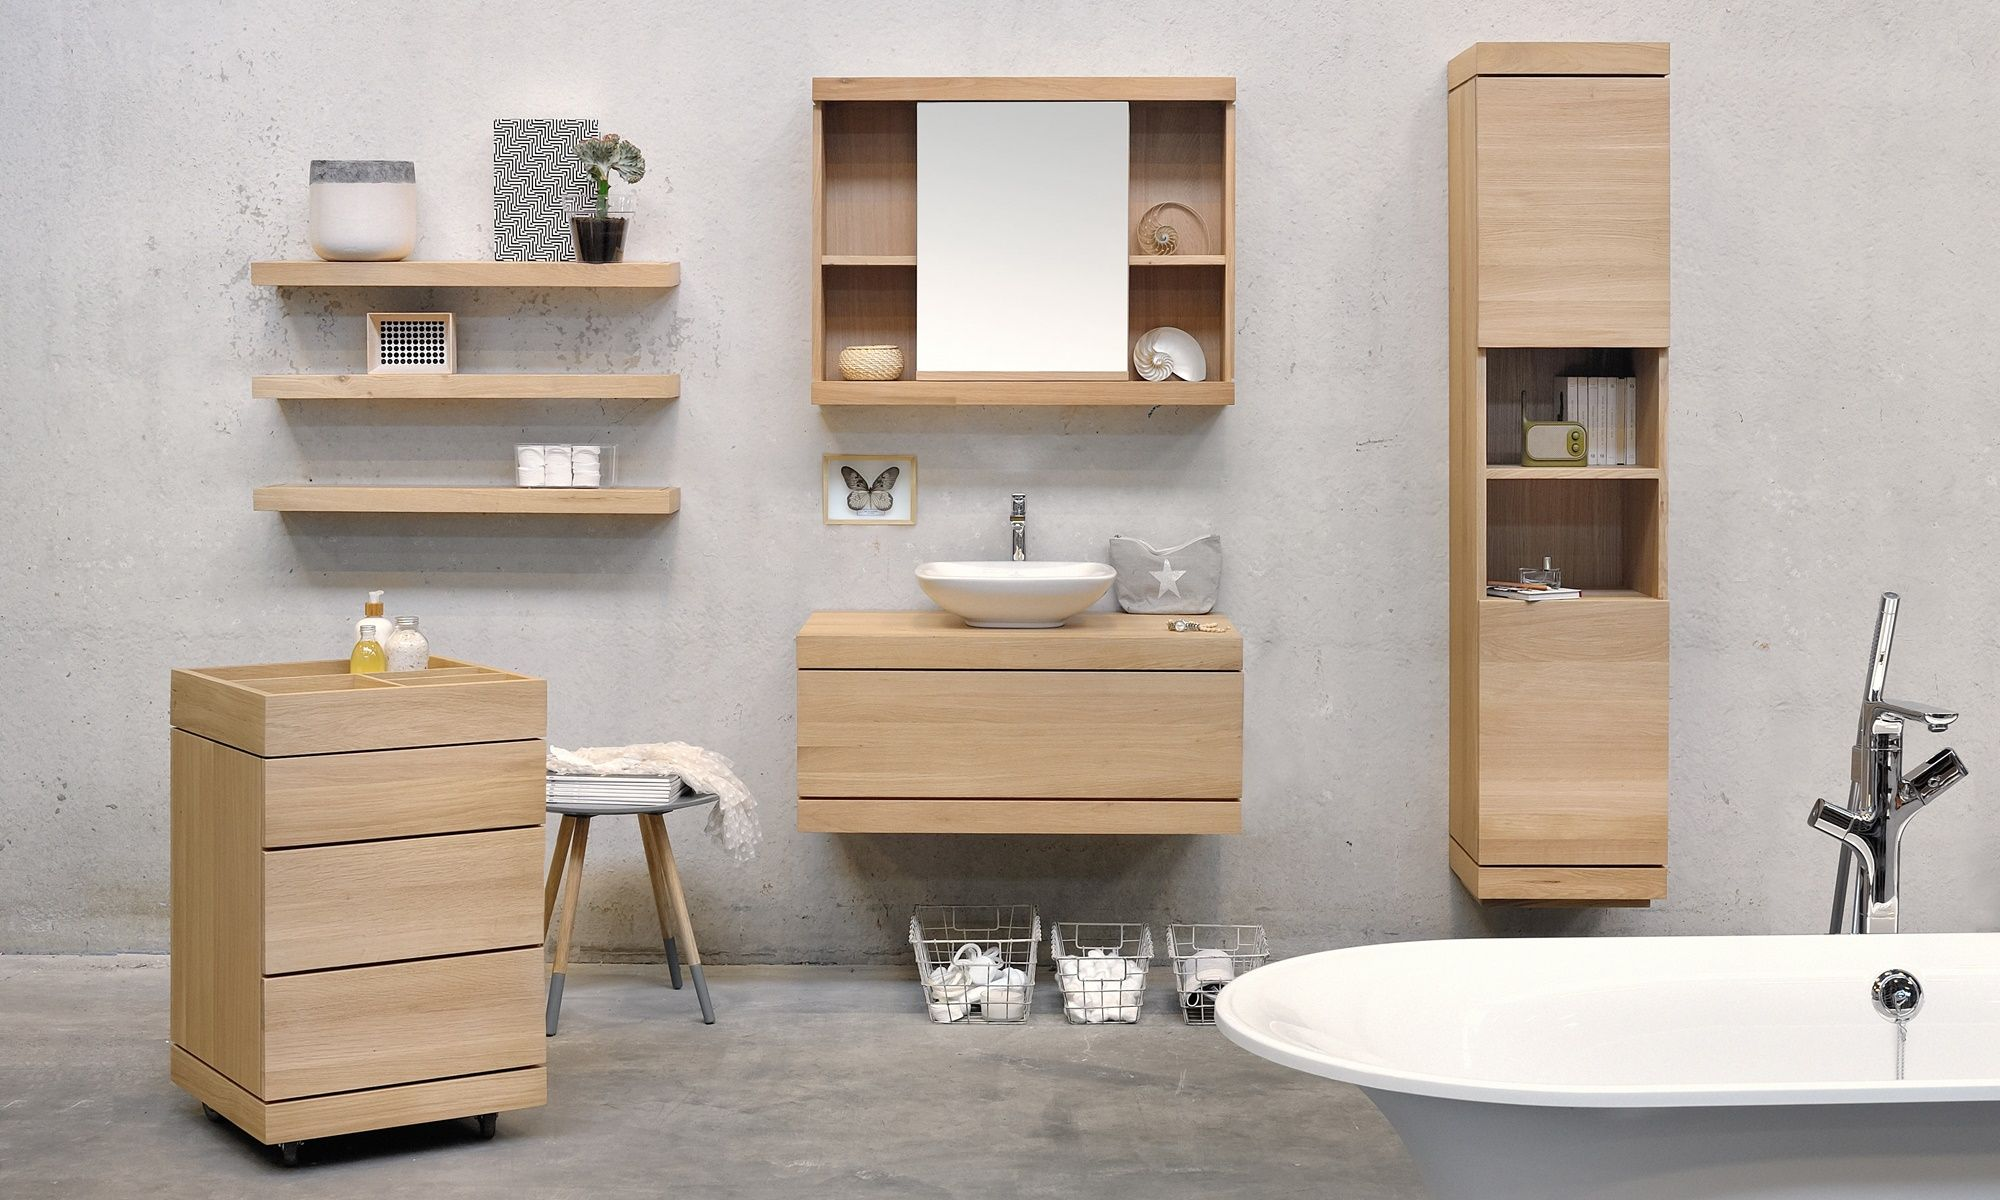 bathroom spaces for of smallet white full ideas design floor furniture cabinet storage size bathroombathroom picture stunning small ikeatunning ikea